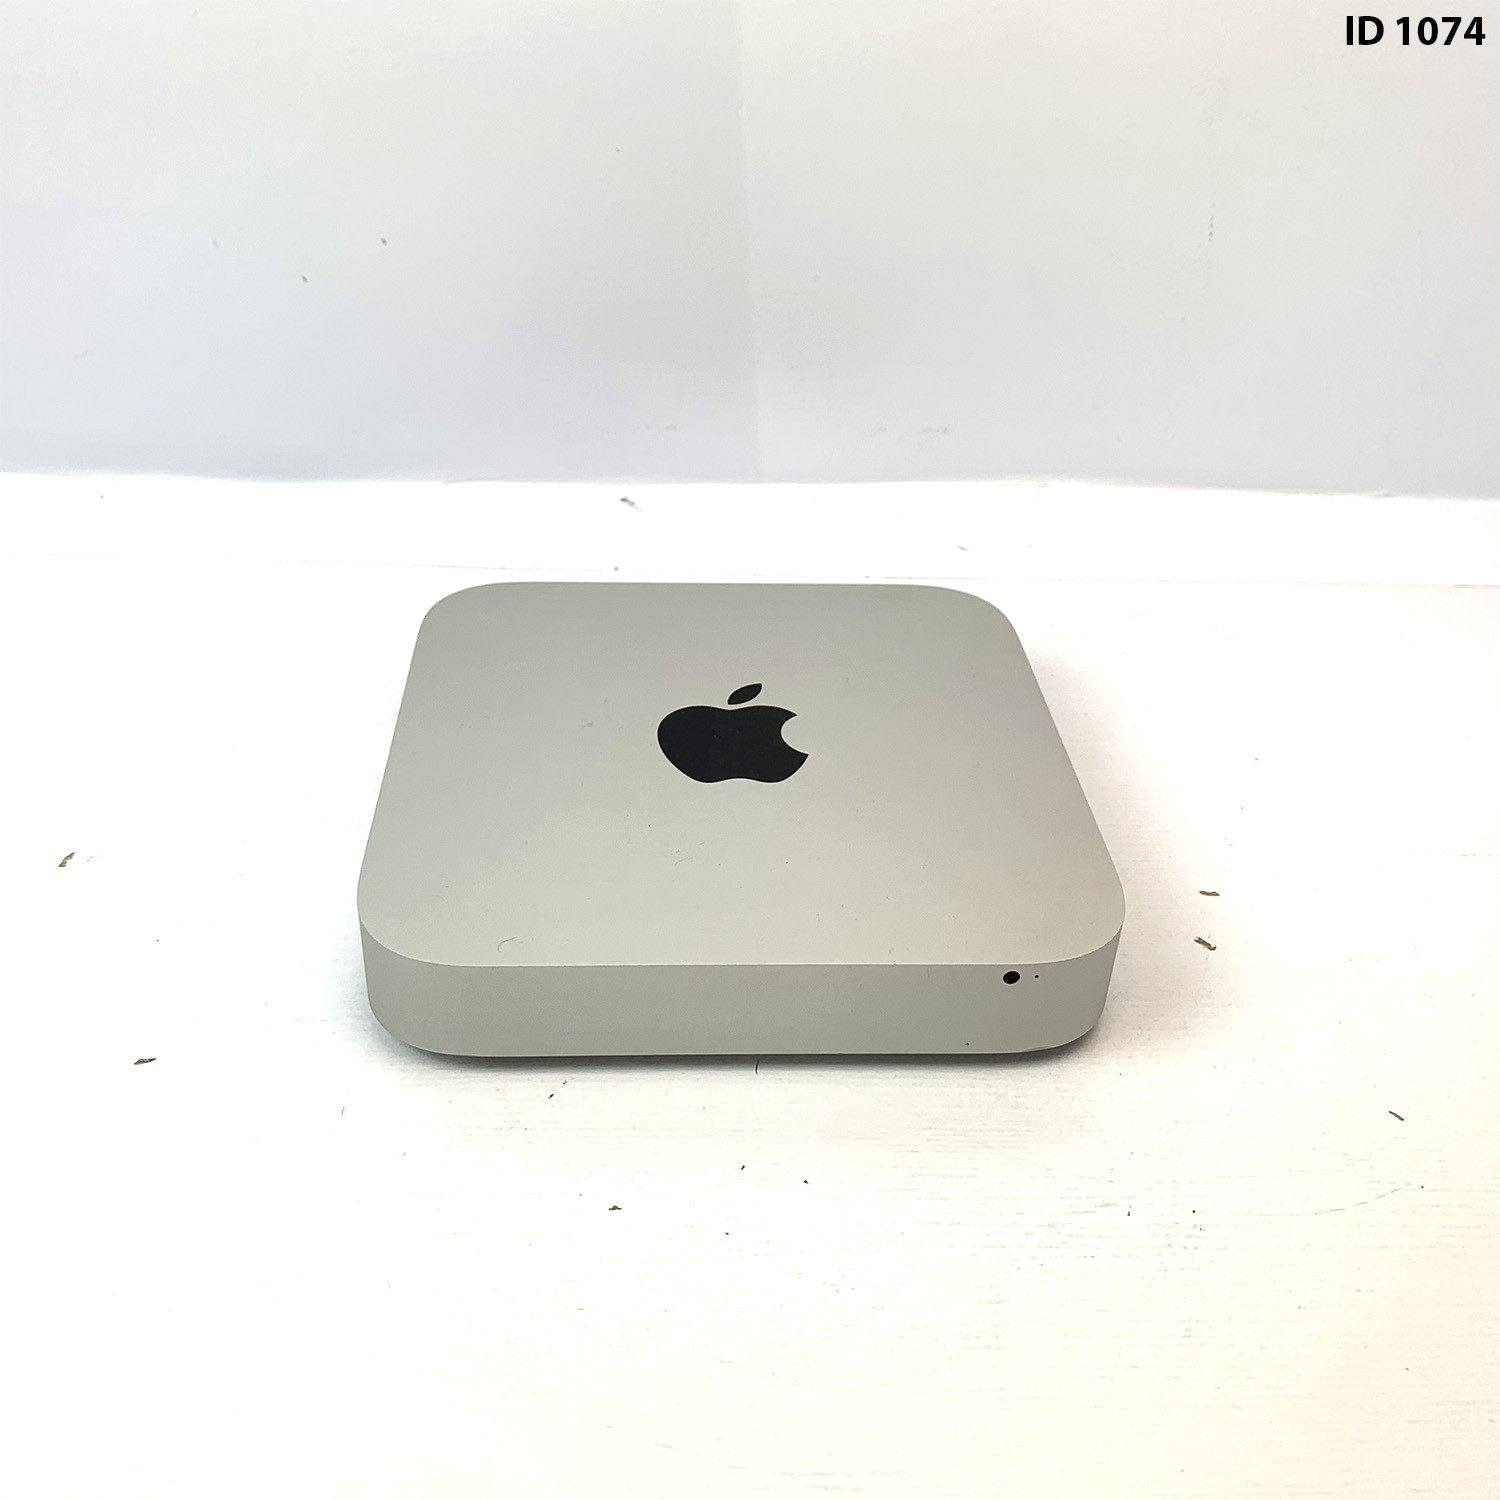 Mac Mini i5 2.5Ghz 8GB 256GB SSD MD387LL/A Seminovo